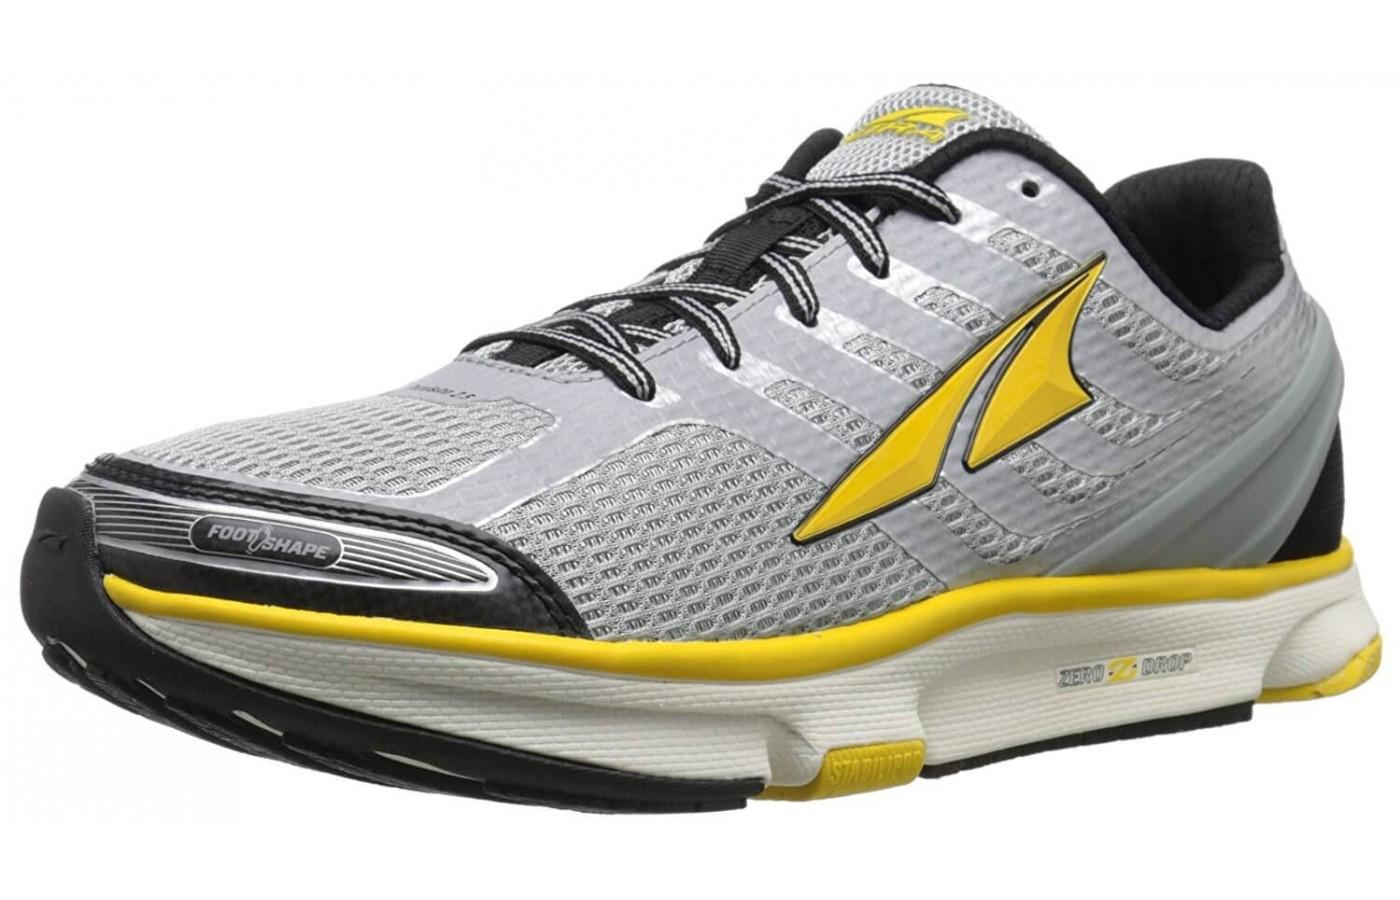 Altra Provision 2.5 has a distinctive look